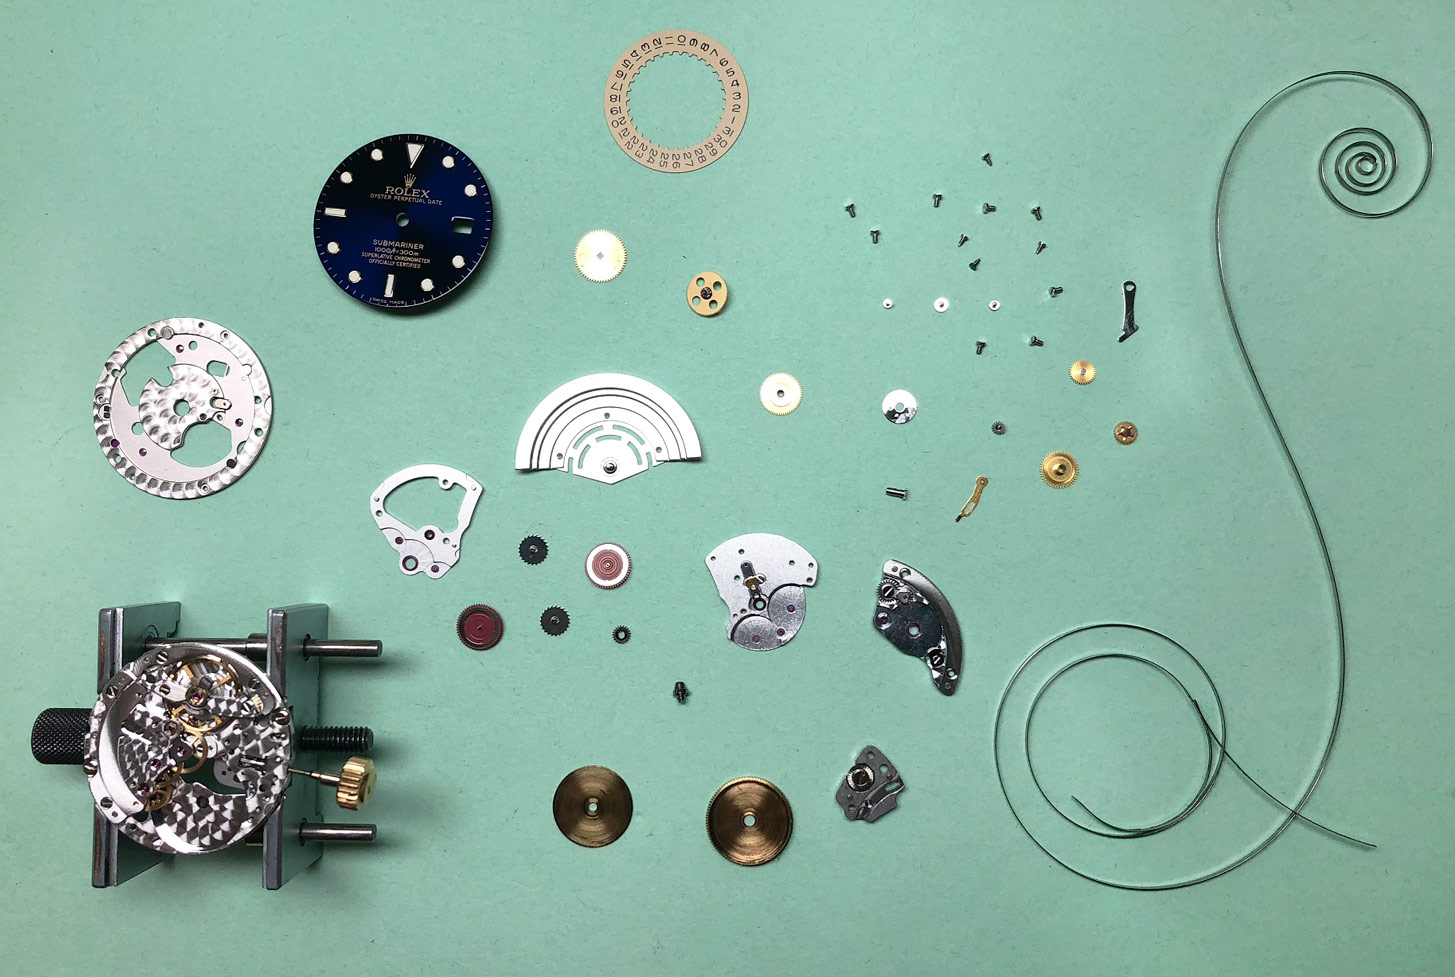 Rolex Submariner watch repair movement